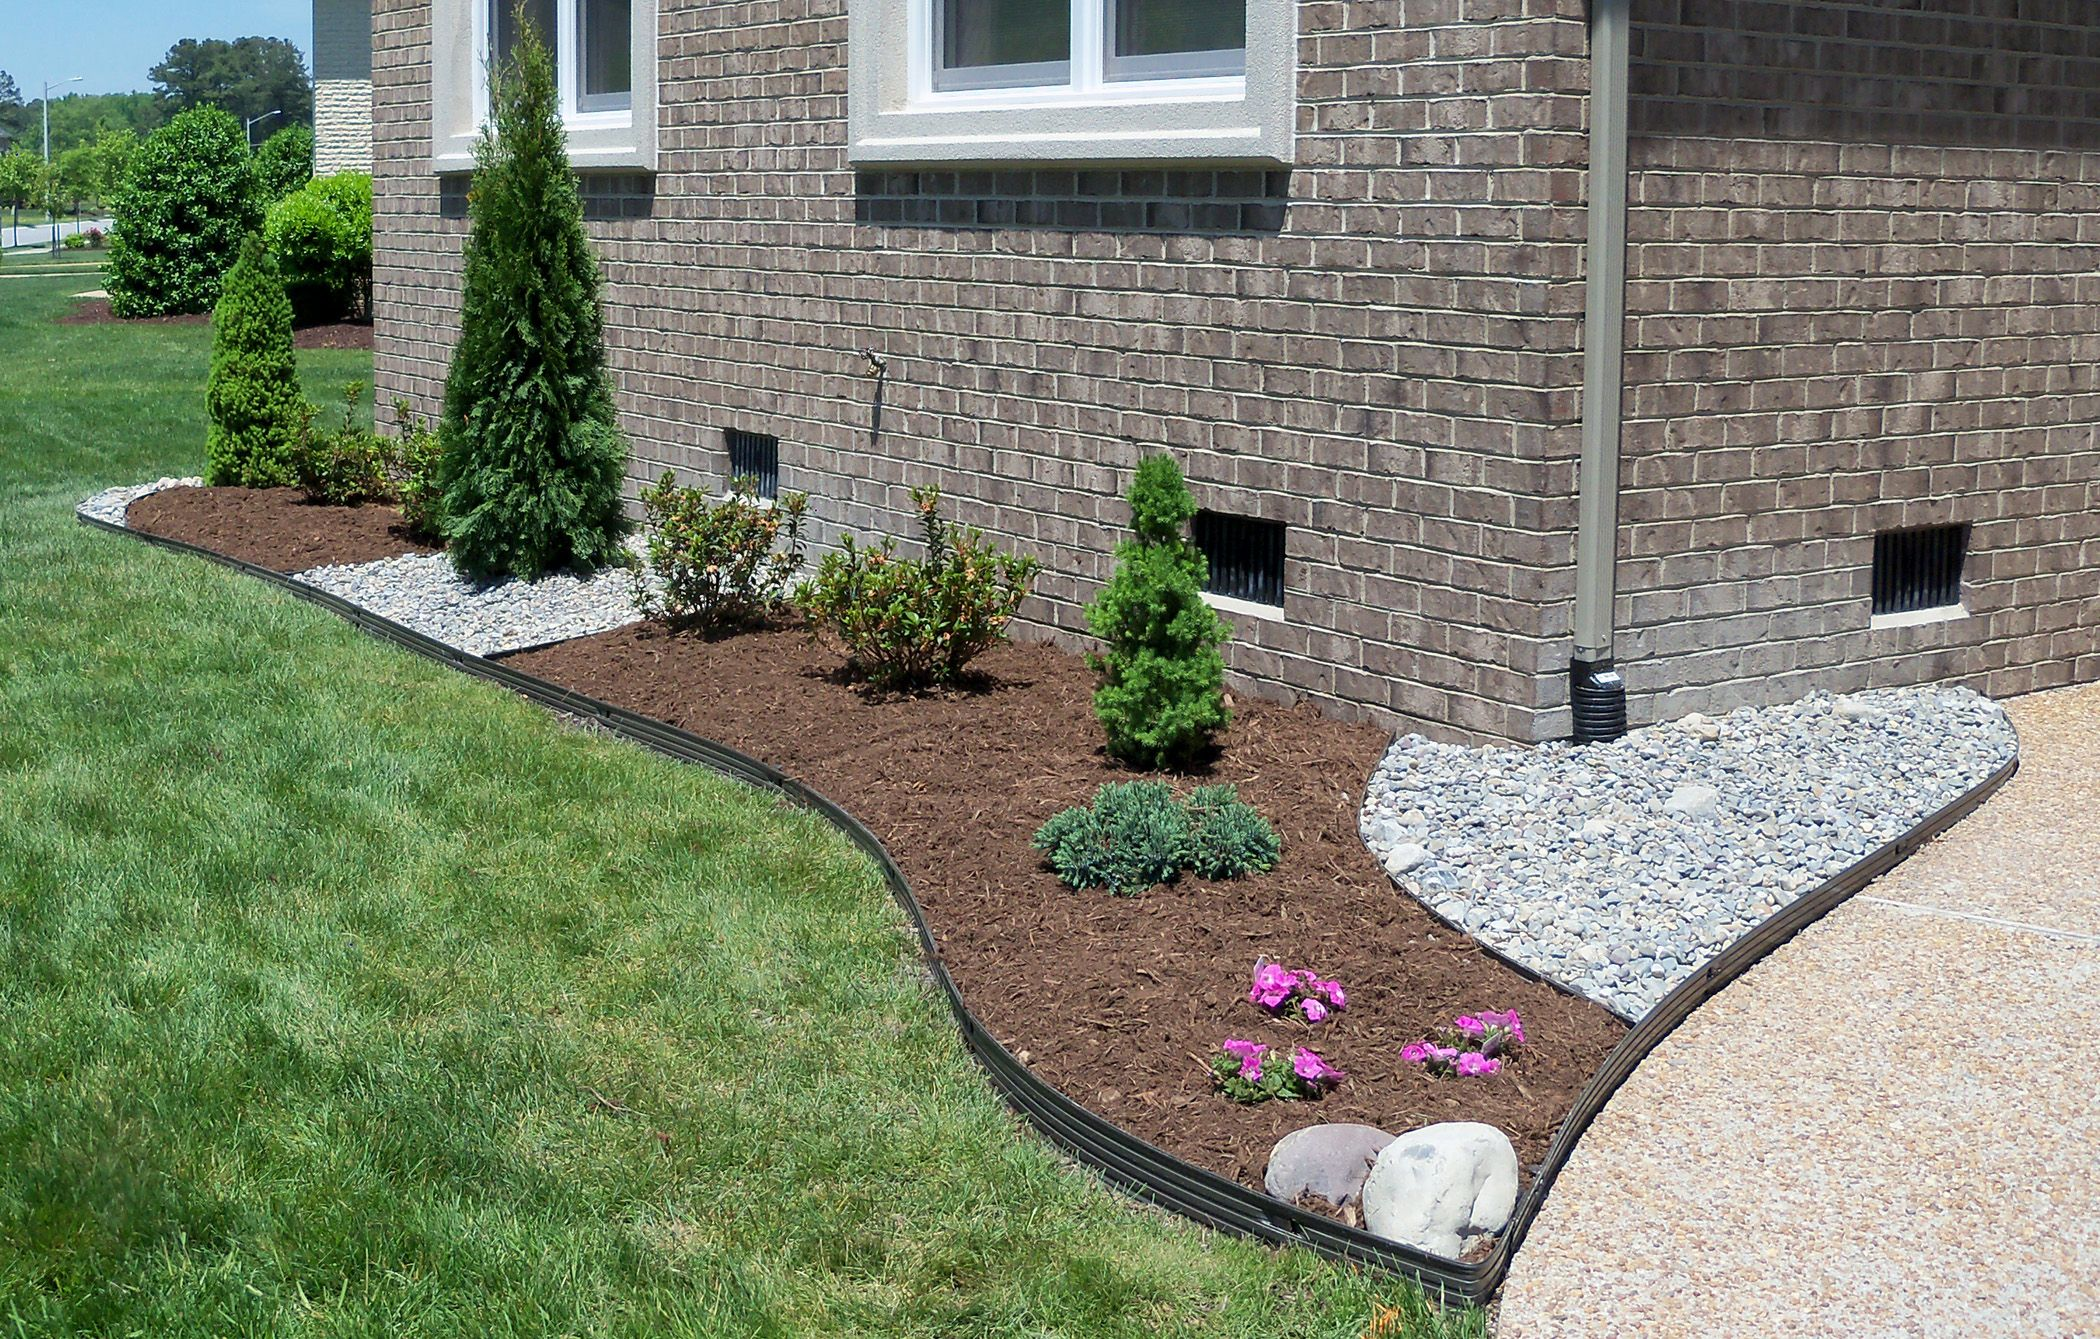 Landscaping With Stone Mulch Pictures : Gravel landscaping ideas va beach mulch and